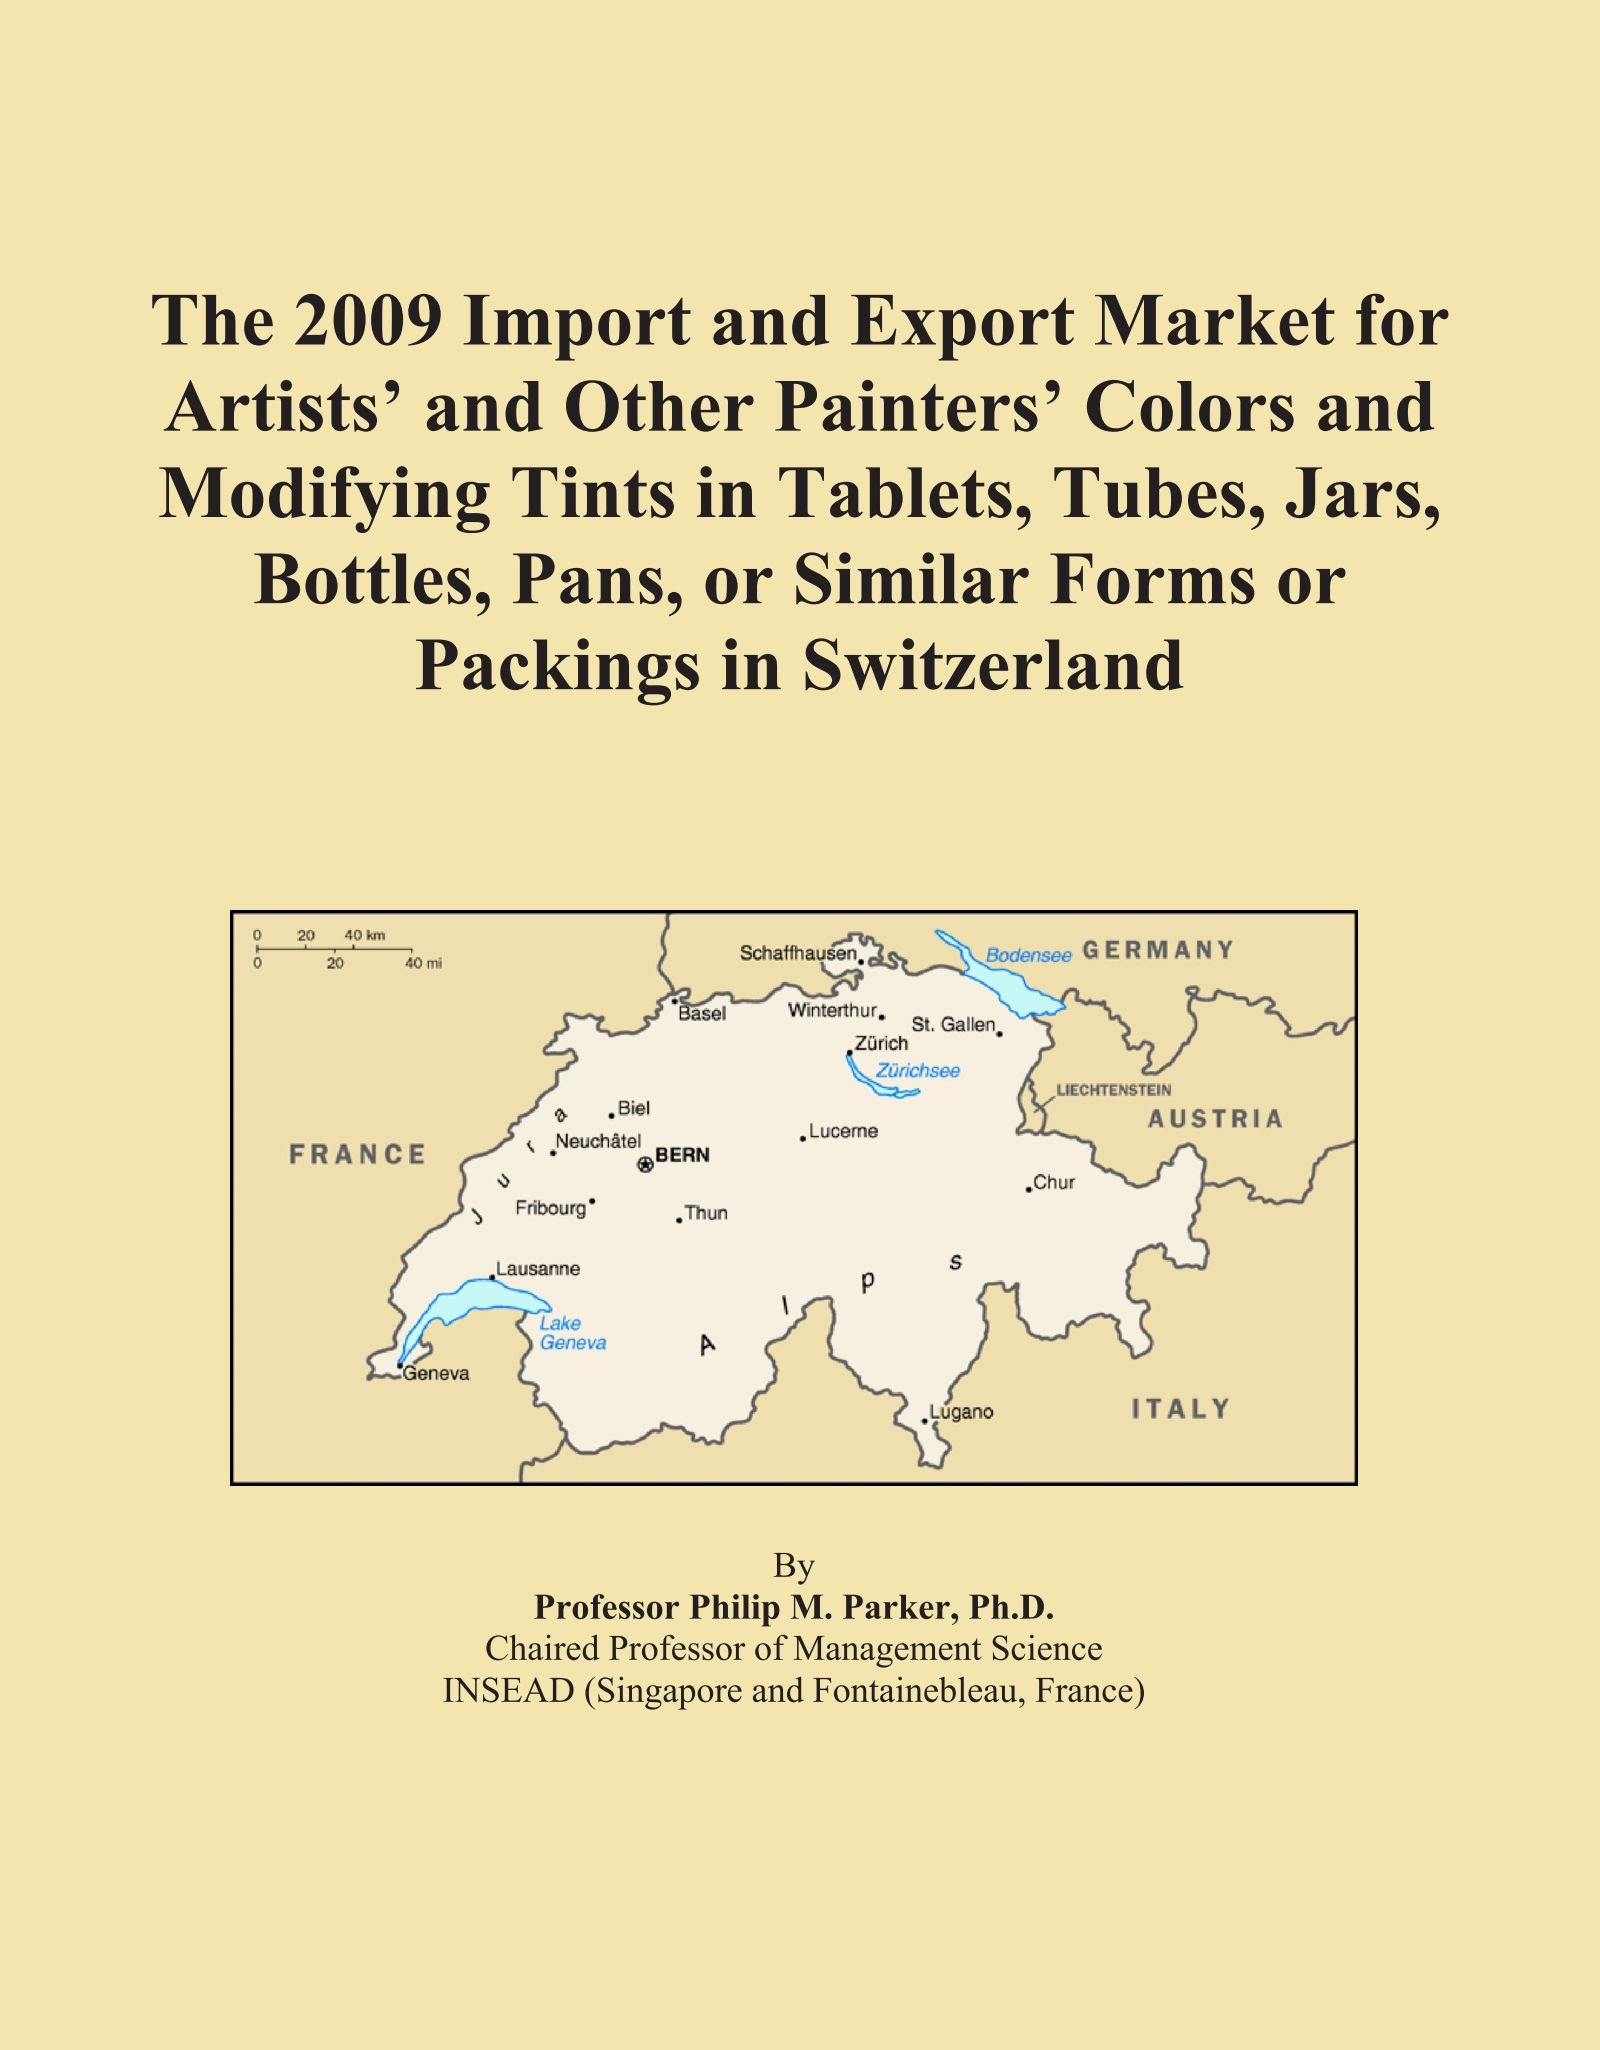 Download The 2009 Import and Export Market for Artists' and Other Painters' Colors and Modifying Tints in Tablets, Tubes, Jars, Bottles, Pans, or Similar Forms or Packings in Switzerland PDF